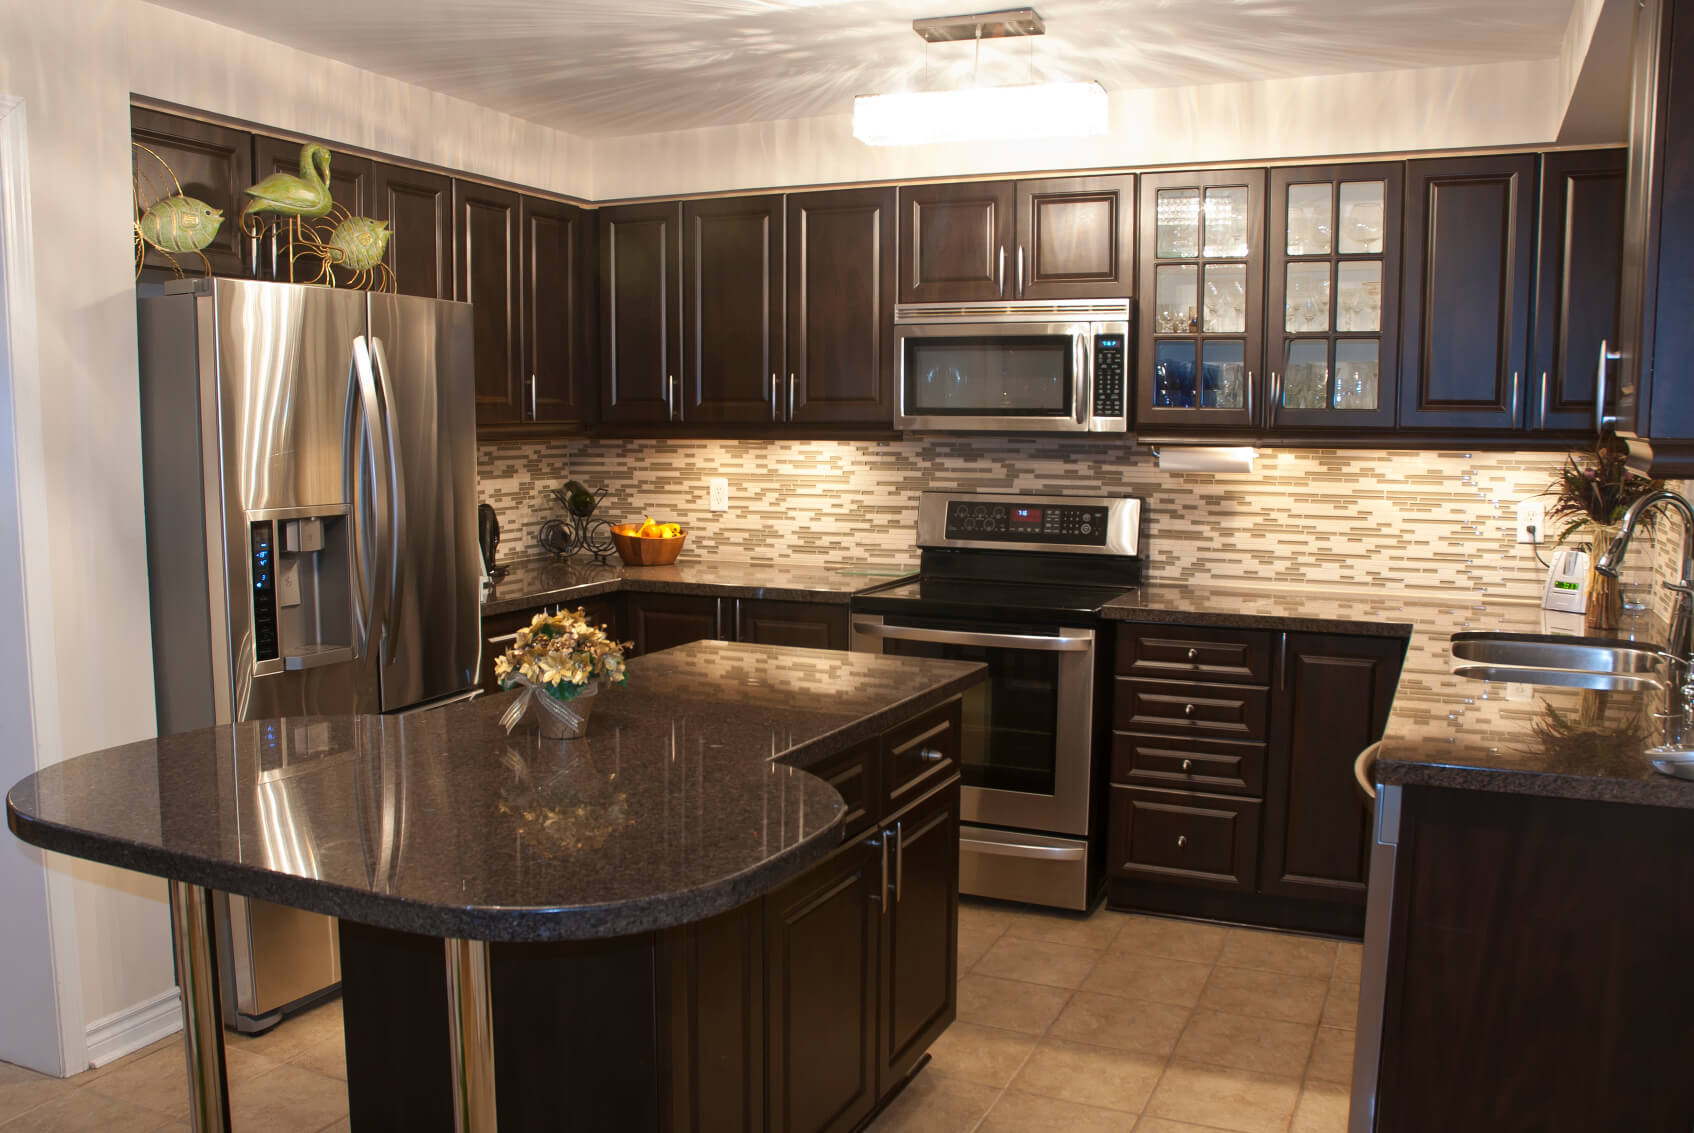 Dark Kitchens With Dark Wood OR Black Kitchen Cabinets - Wood cabinets grey countertops